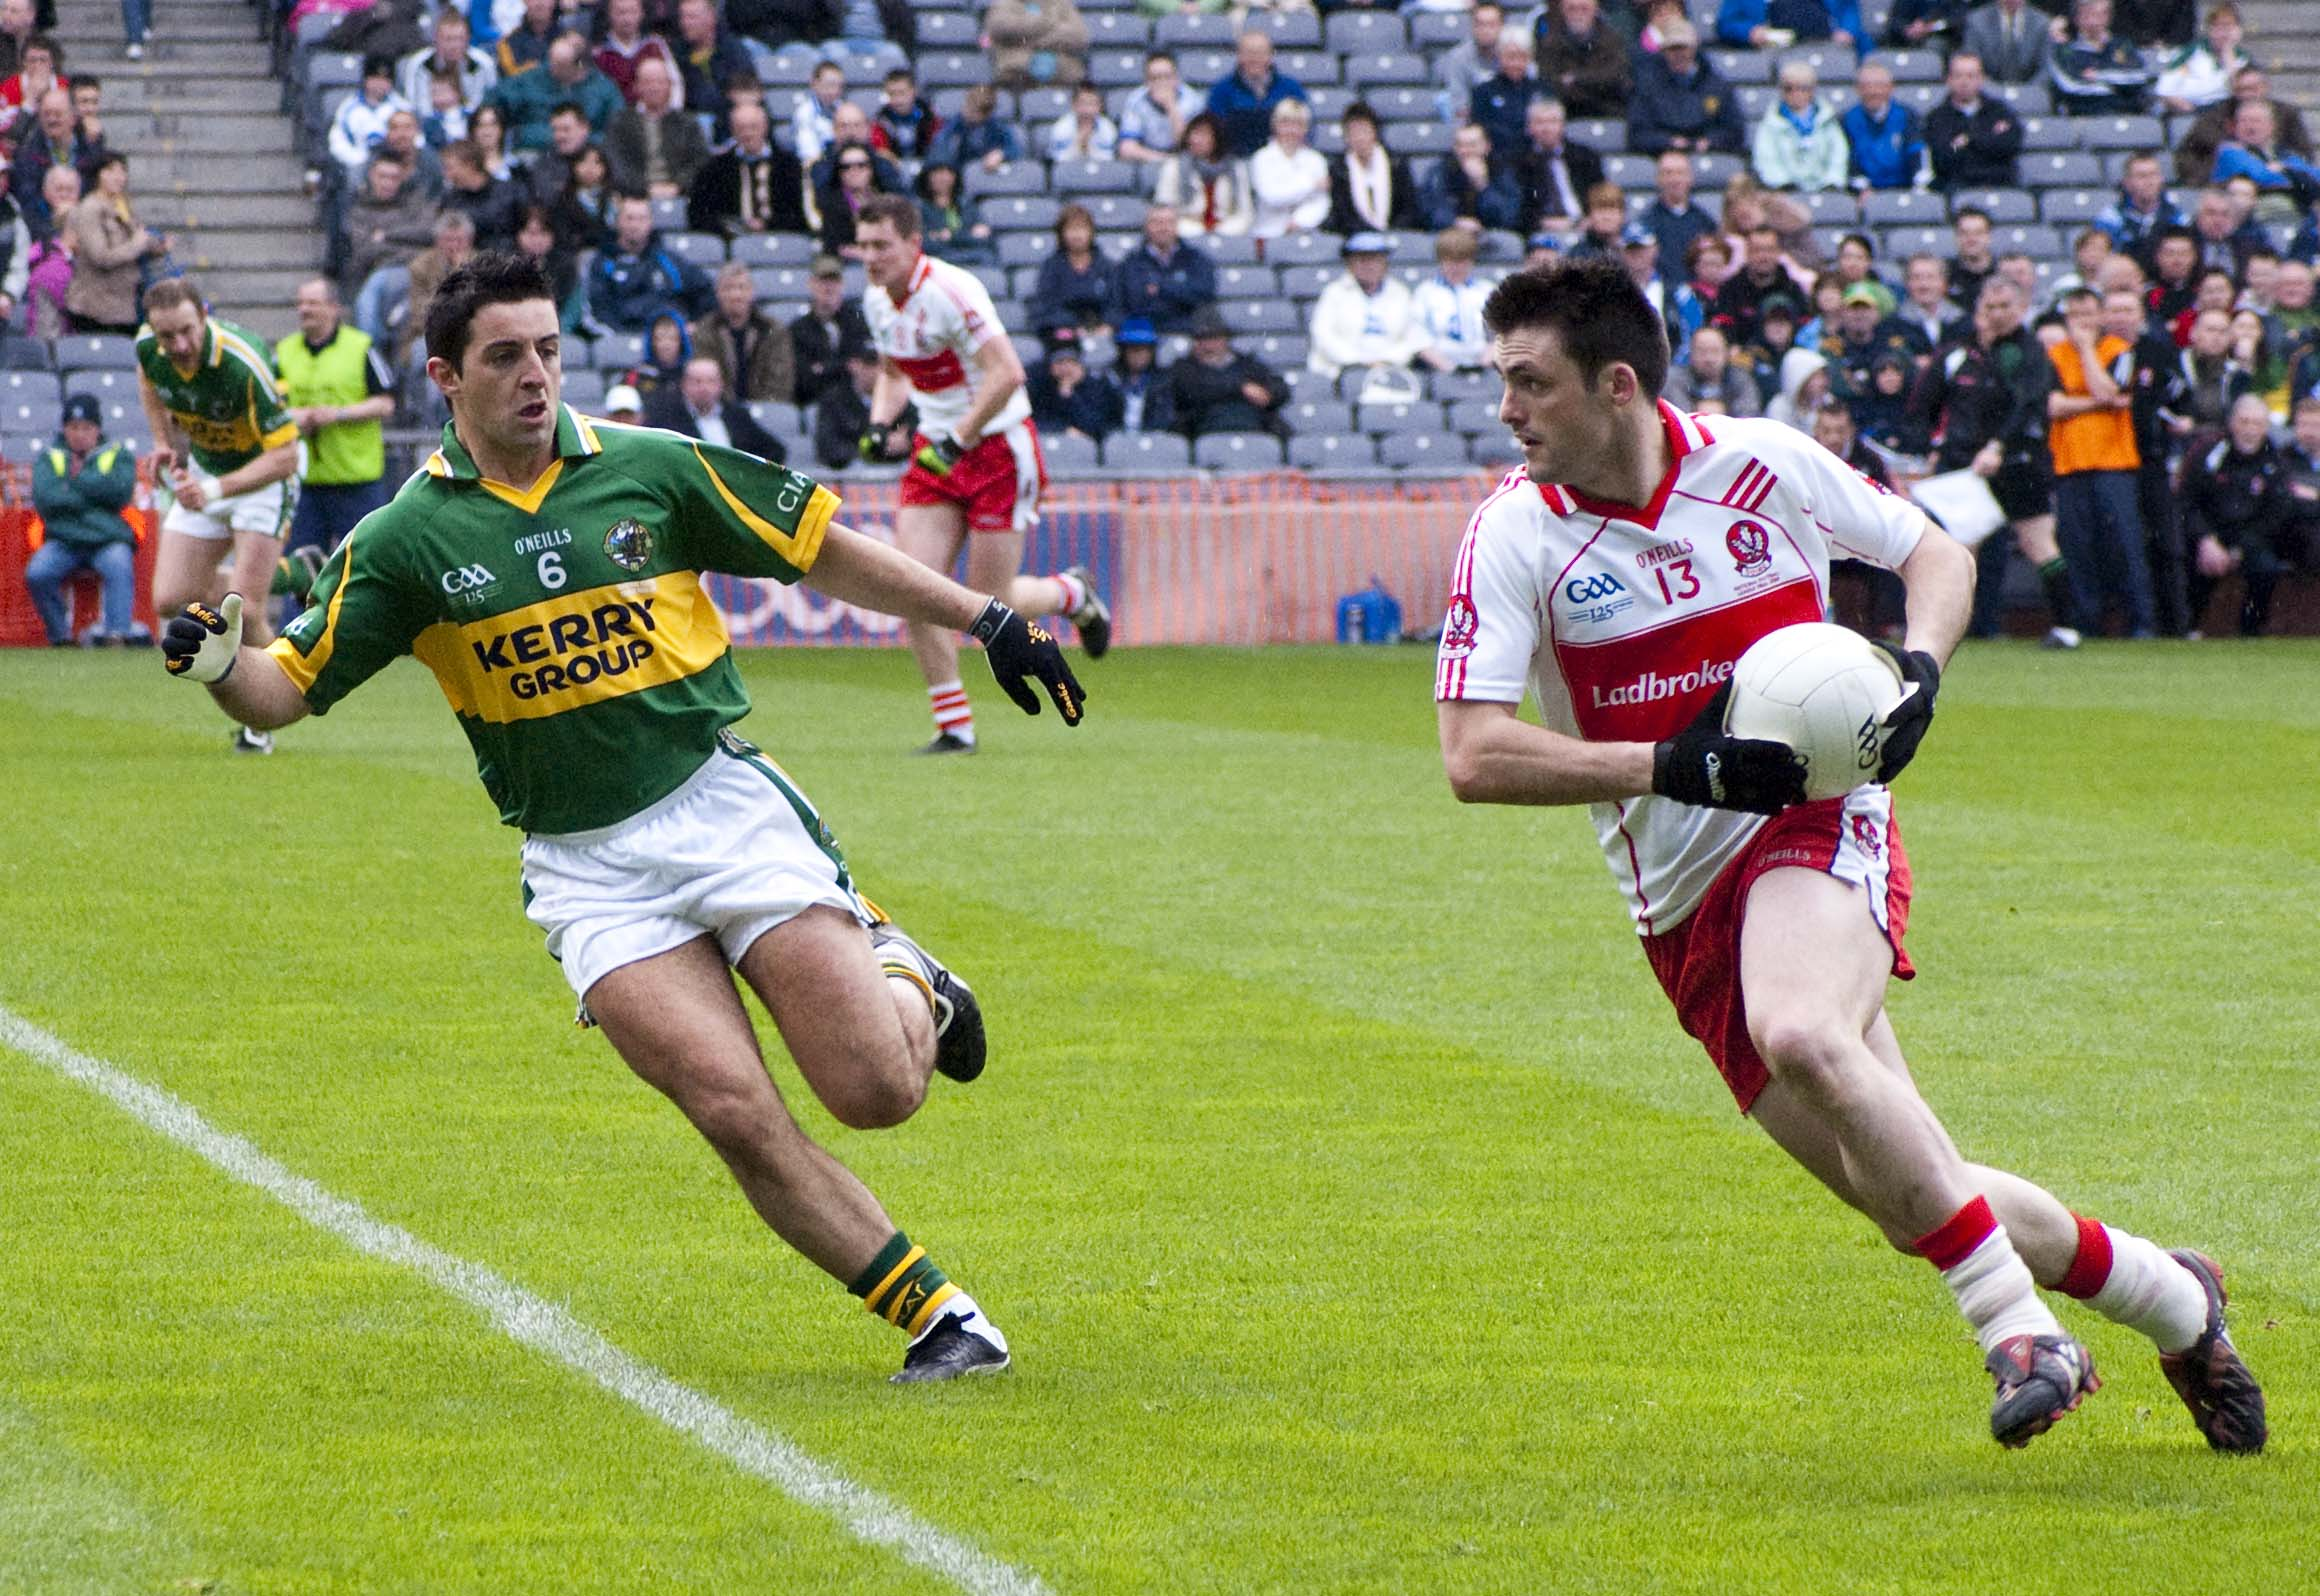 002e4b3f24038 Gaelic football - Wikipedia